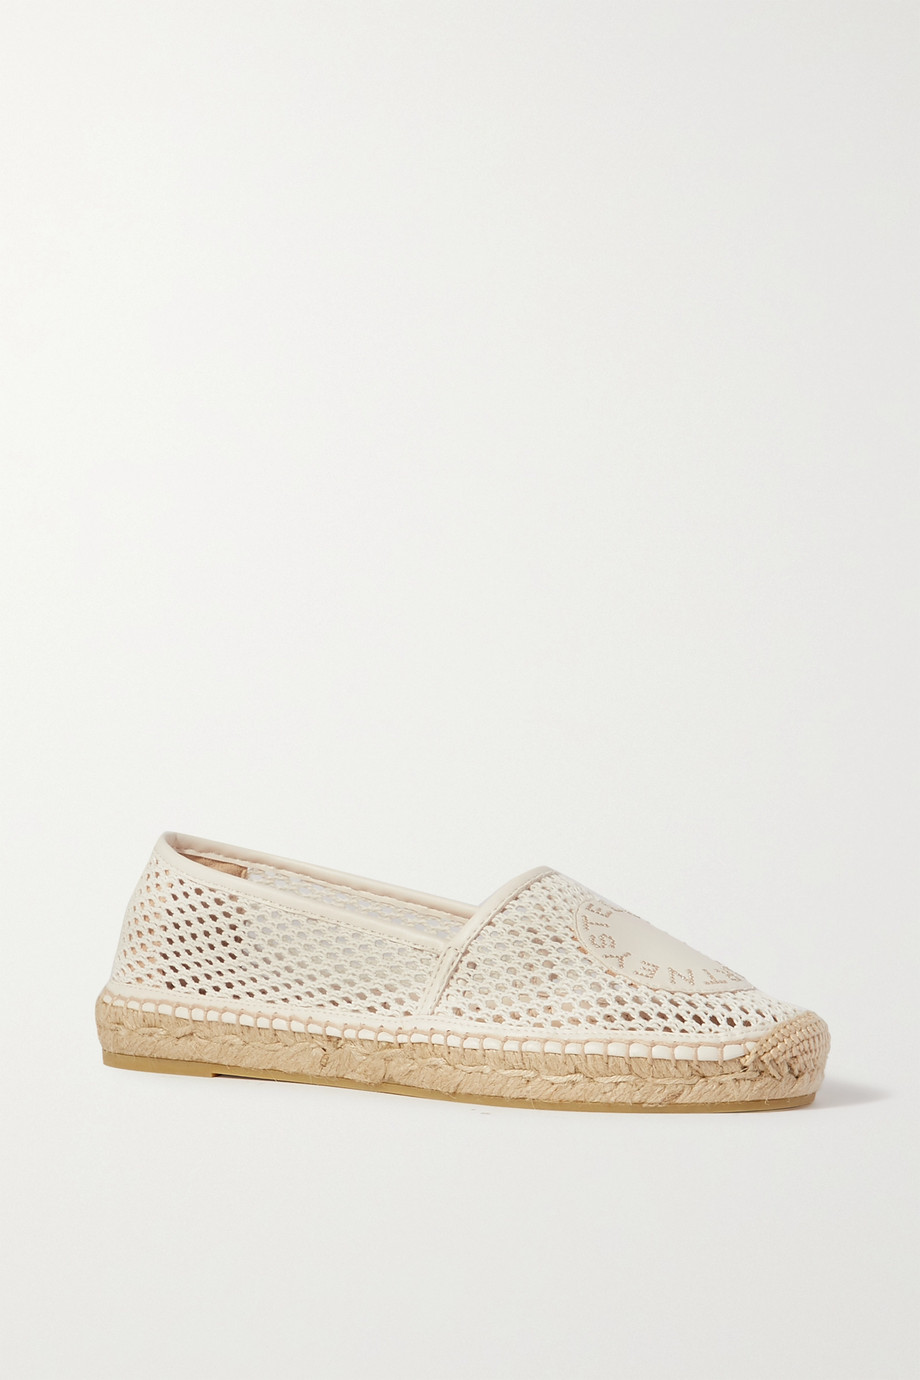 Stella McCartney Selene logo-appliquéd vegetarian leather-trimmed mesh espadrilles